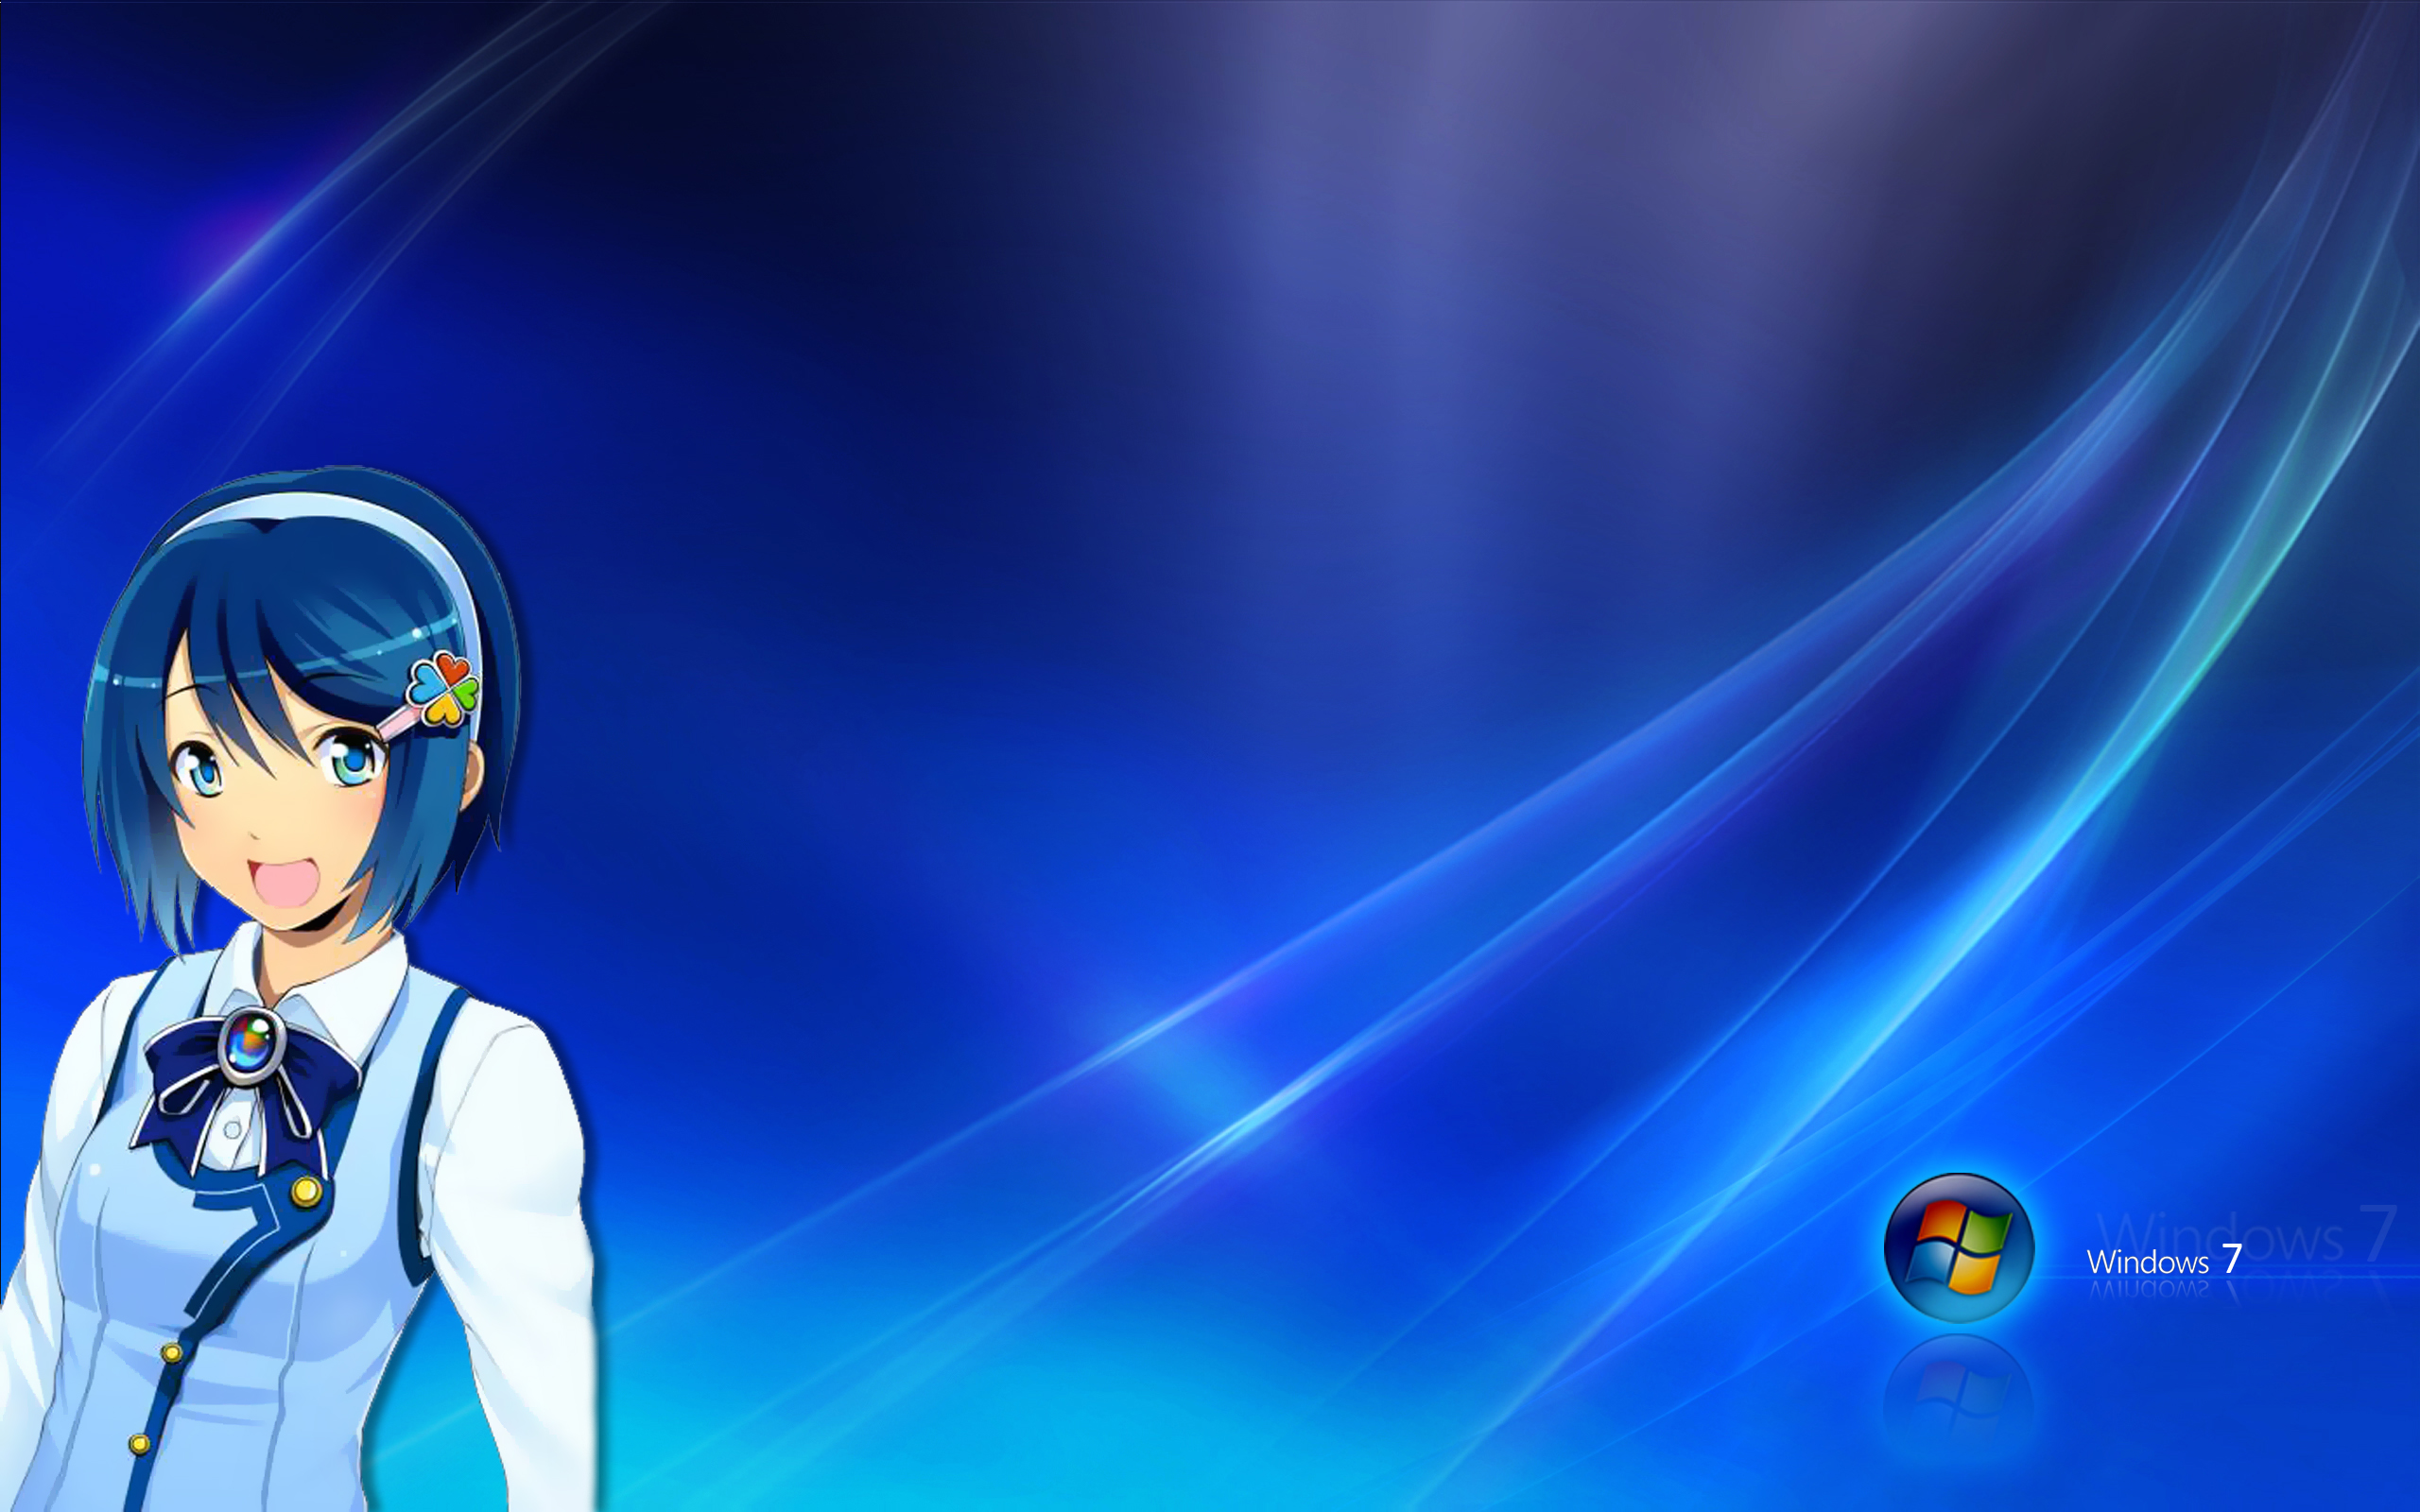 Windows 7 Madobe Nanami anime anime girls personification Free